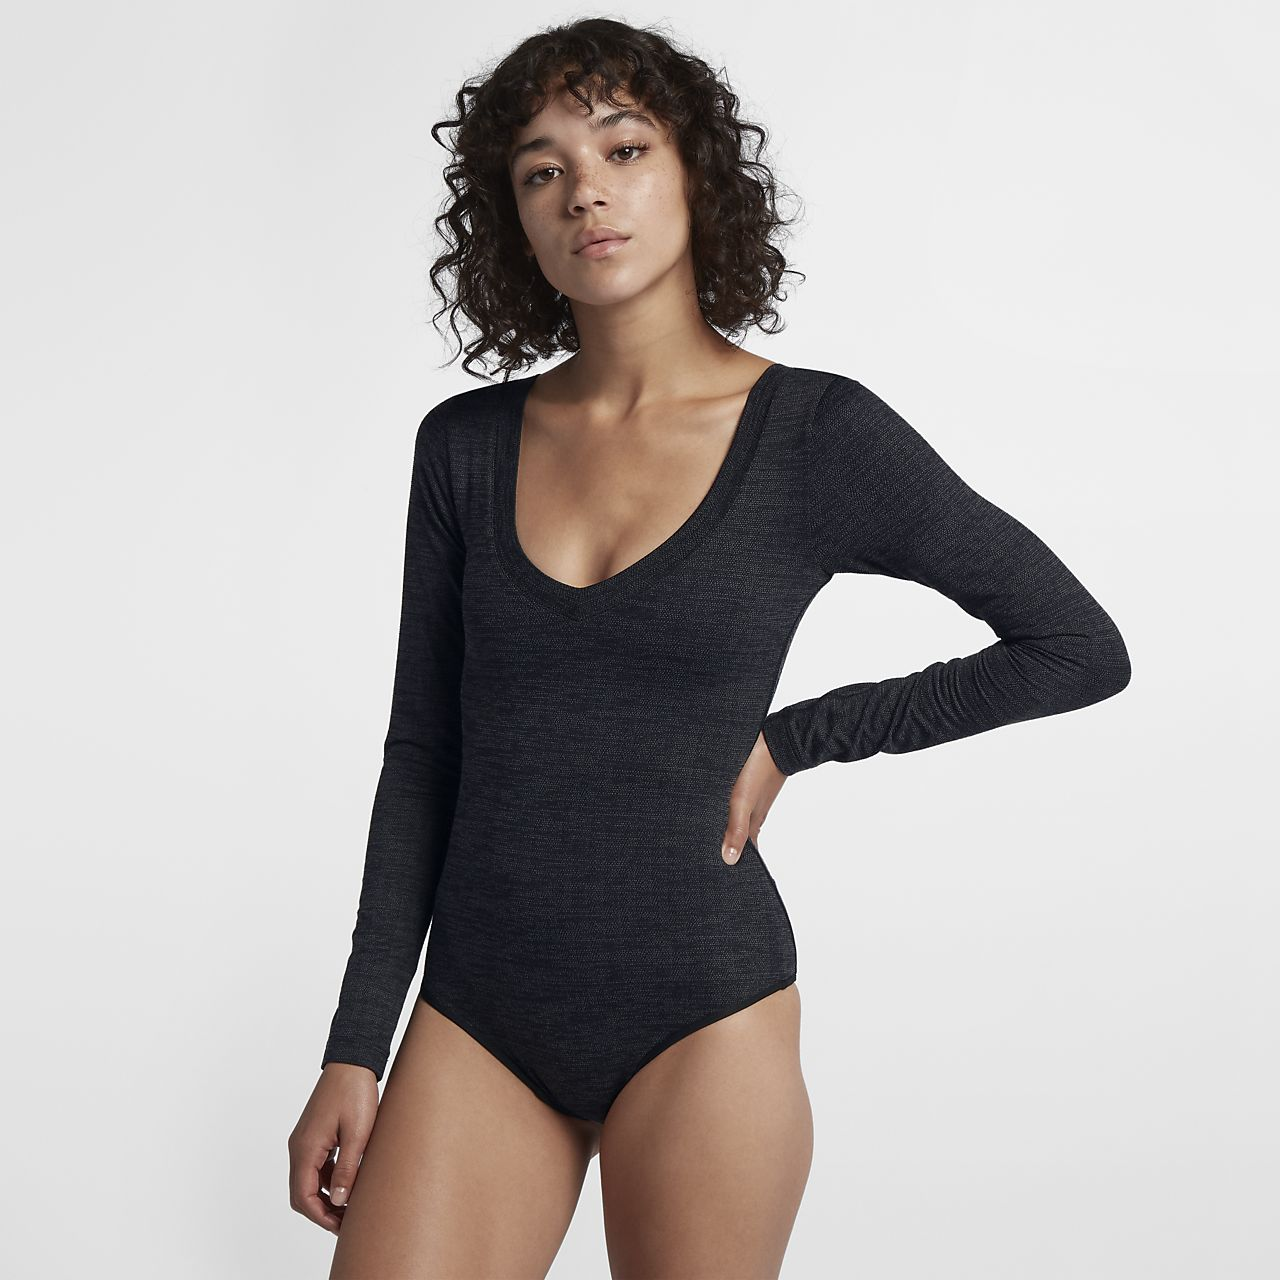 14459afeb1 Hurley Reversible Women s Long-Sleeve Bodysuit. Nike.com AU